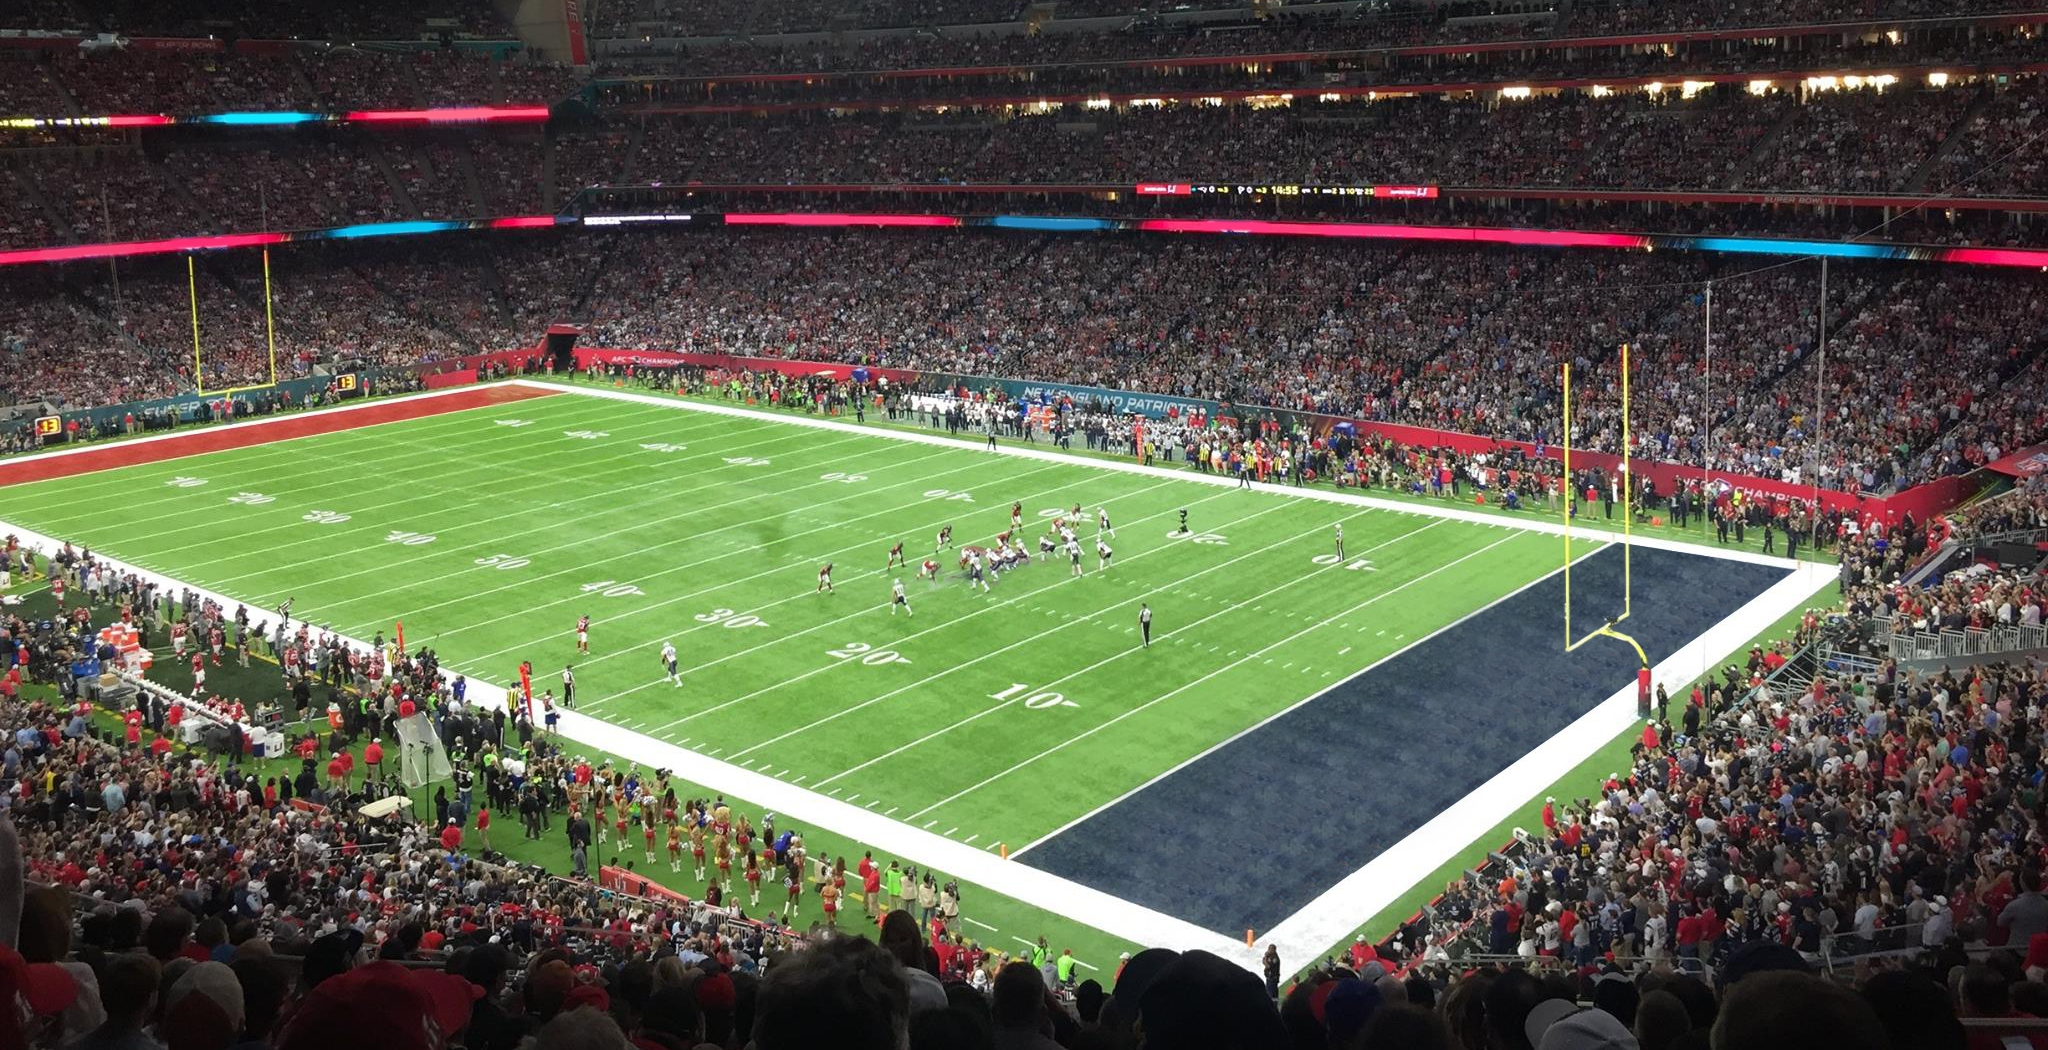 How To Afford Super Bowl Tickets pertaining to Super Bowl 2021 Tickets